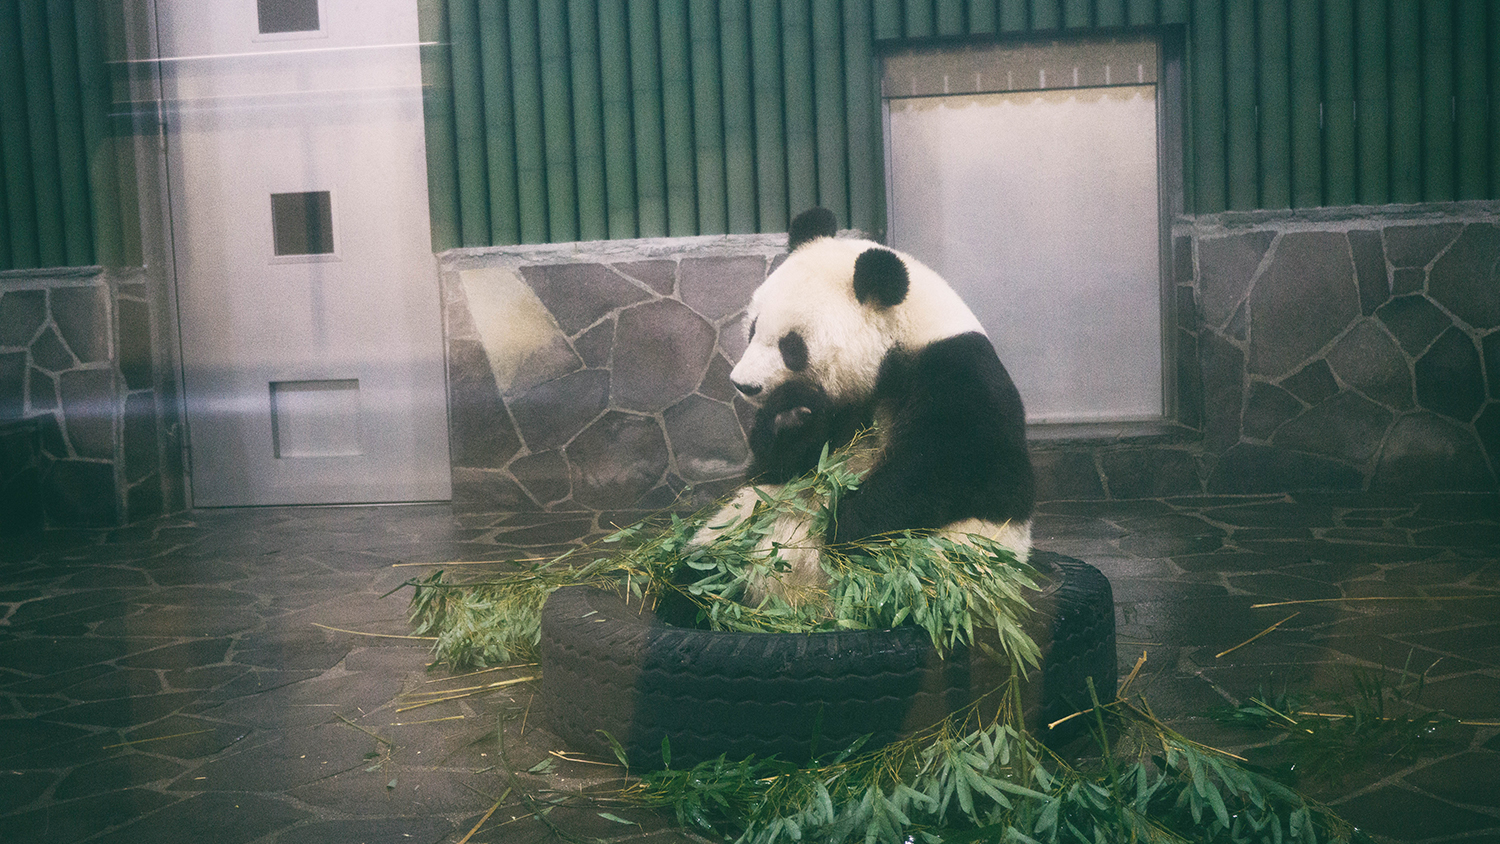 This is Tam Tam, the giant panda.